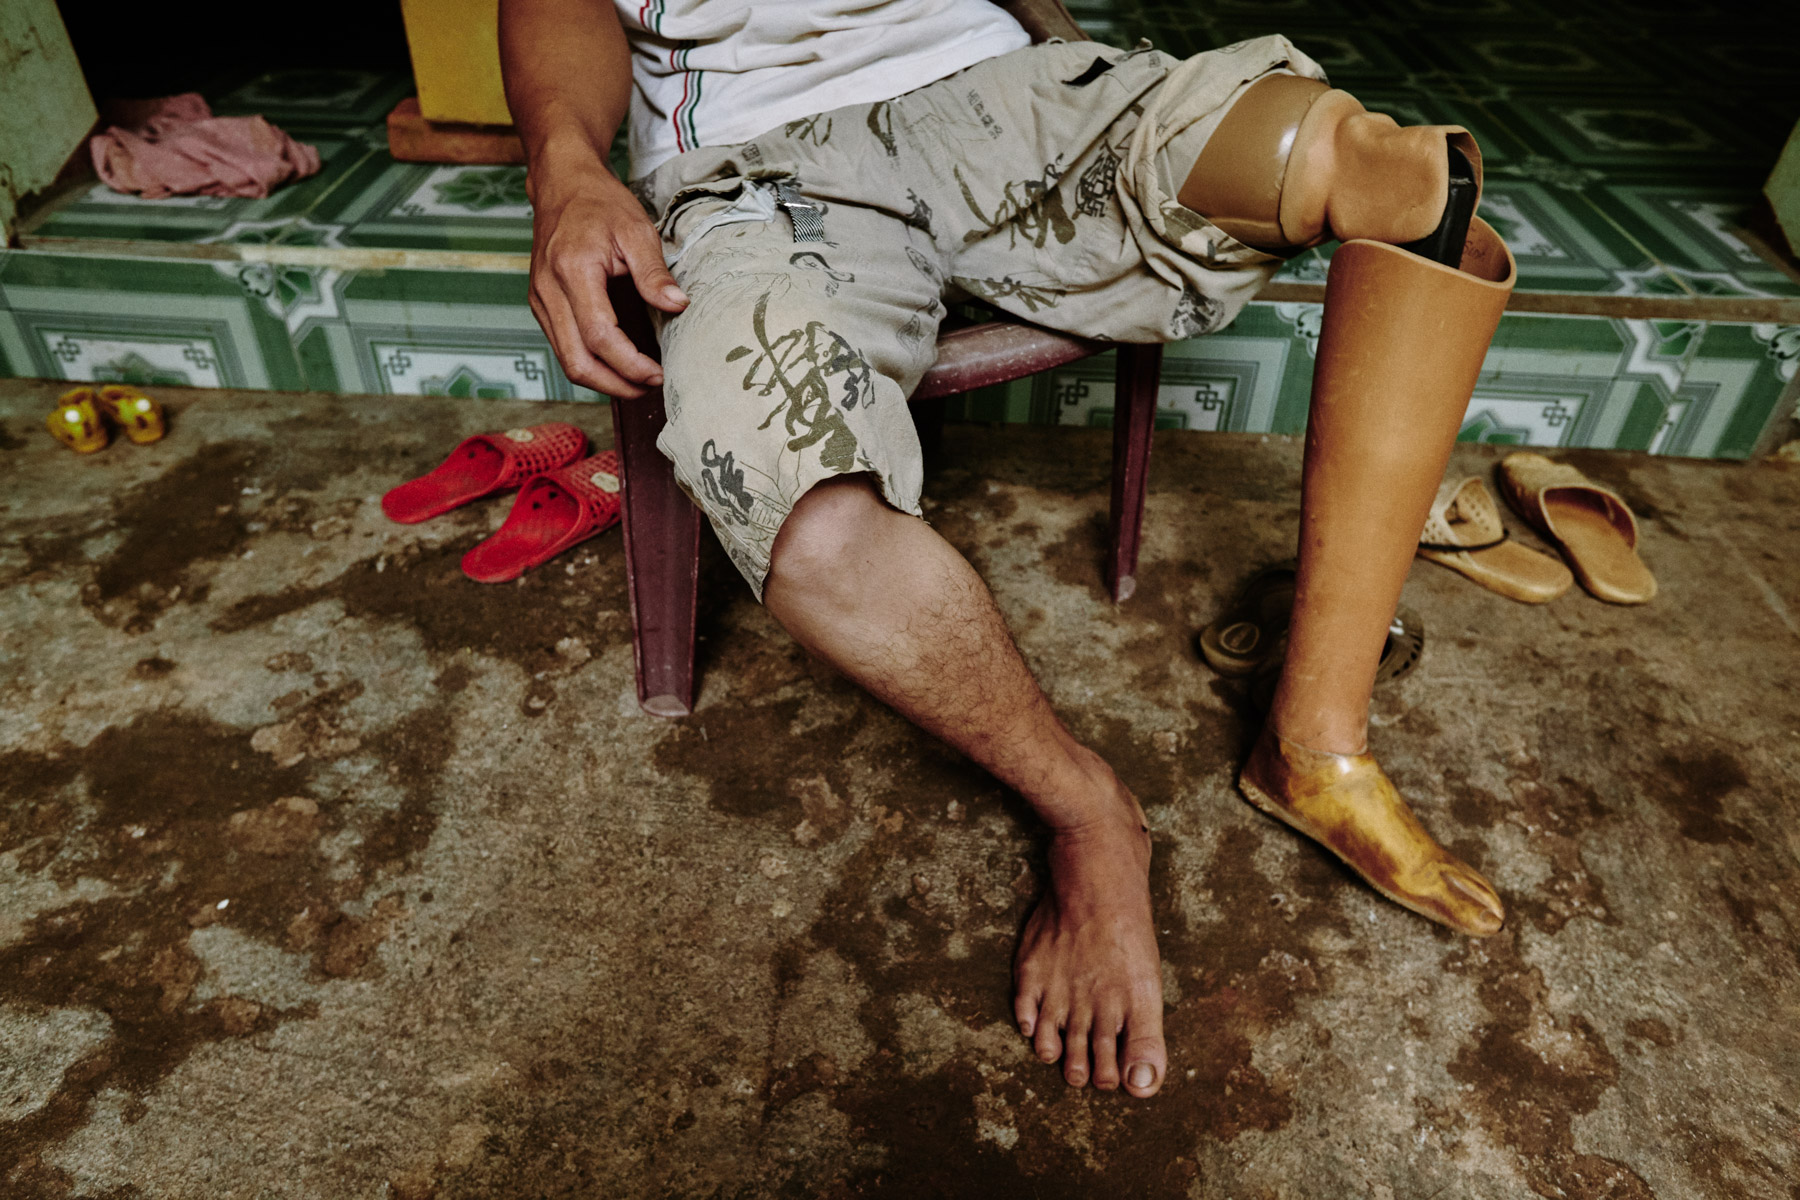 Lo Van Tan, an amputee in Son La province who lost his leg in an accident at a brick factory.